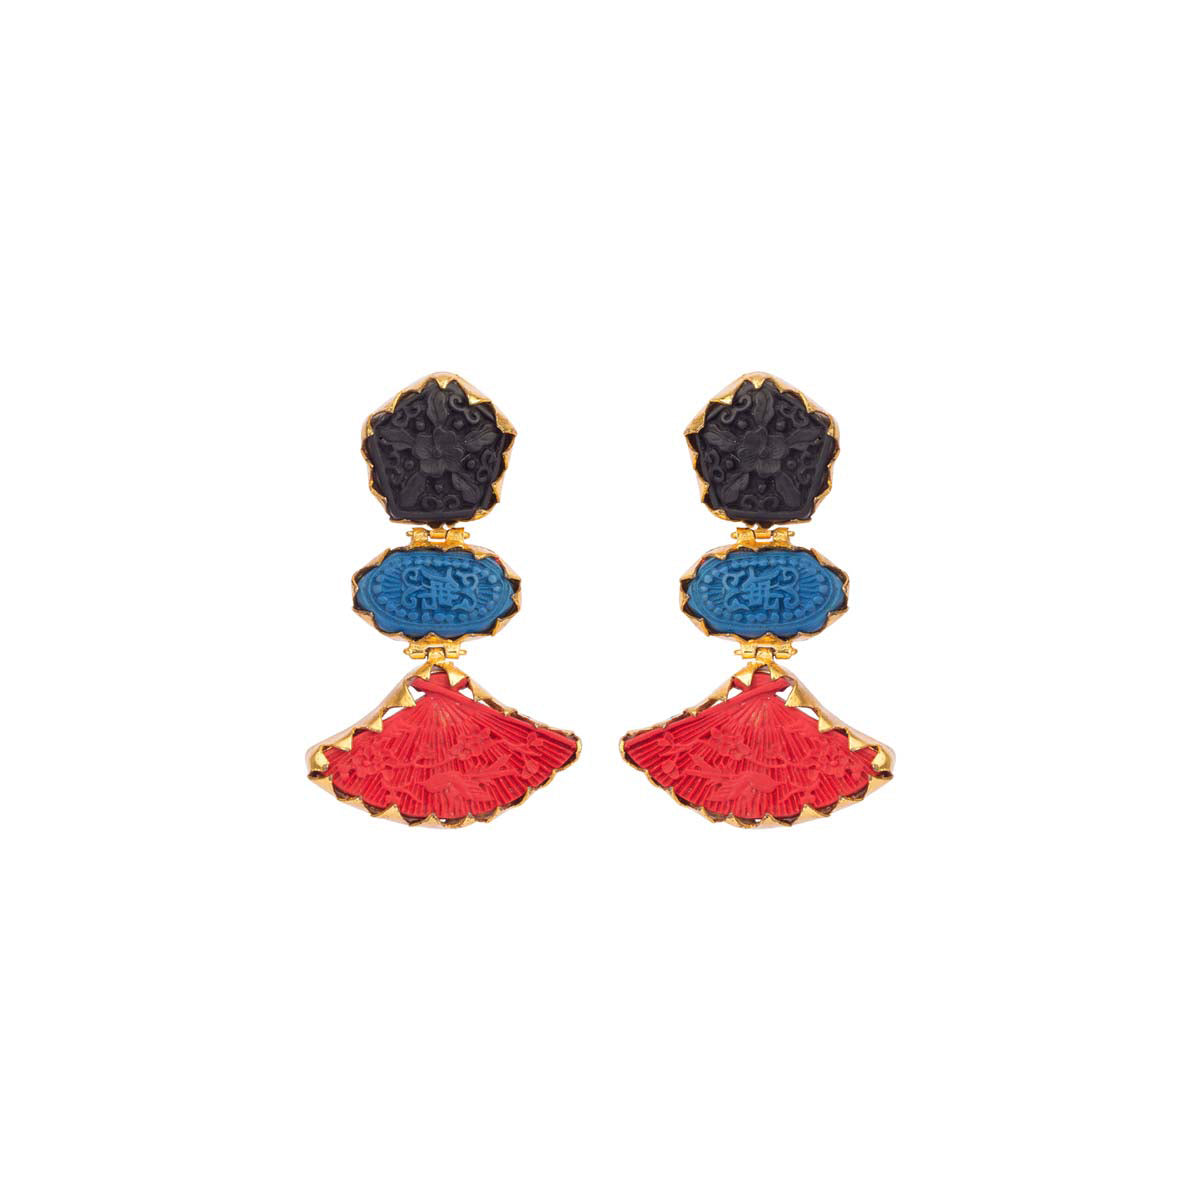 These tiered tri-colour earrings with engraved filigree are casual and carefree as they are classic and cool.